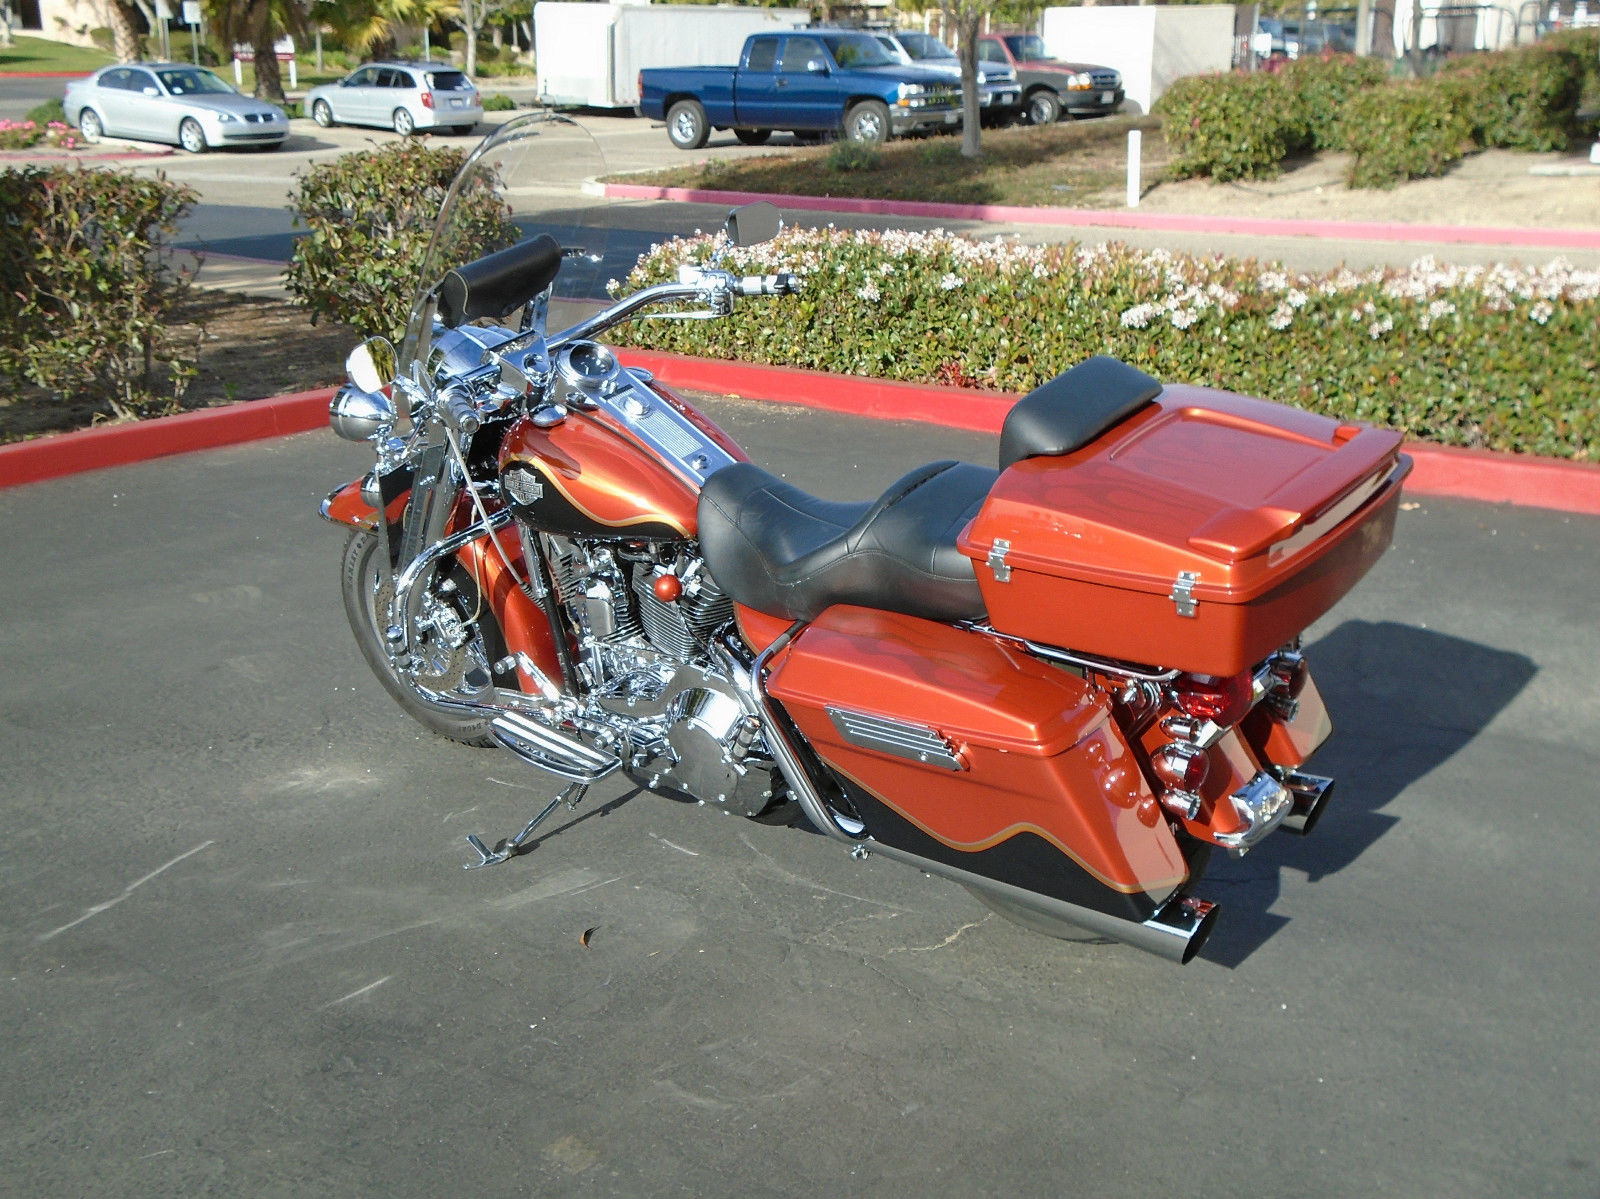 2002 Custom Painted Road King With Tour Pack Chromed Out 95 Cu In 2015 Harley Davidson Motor